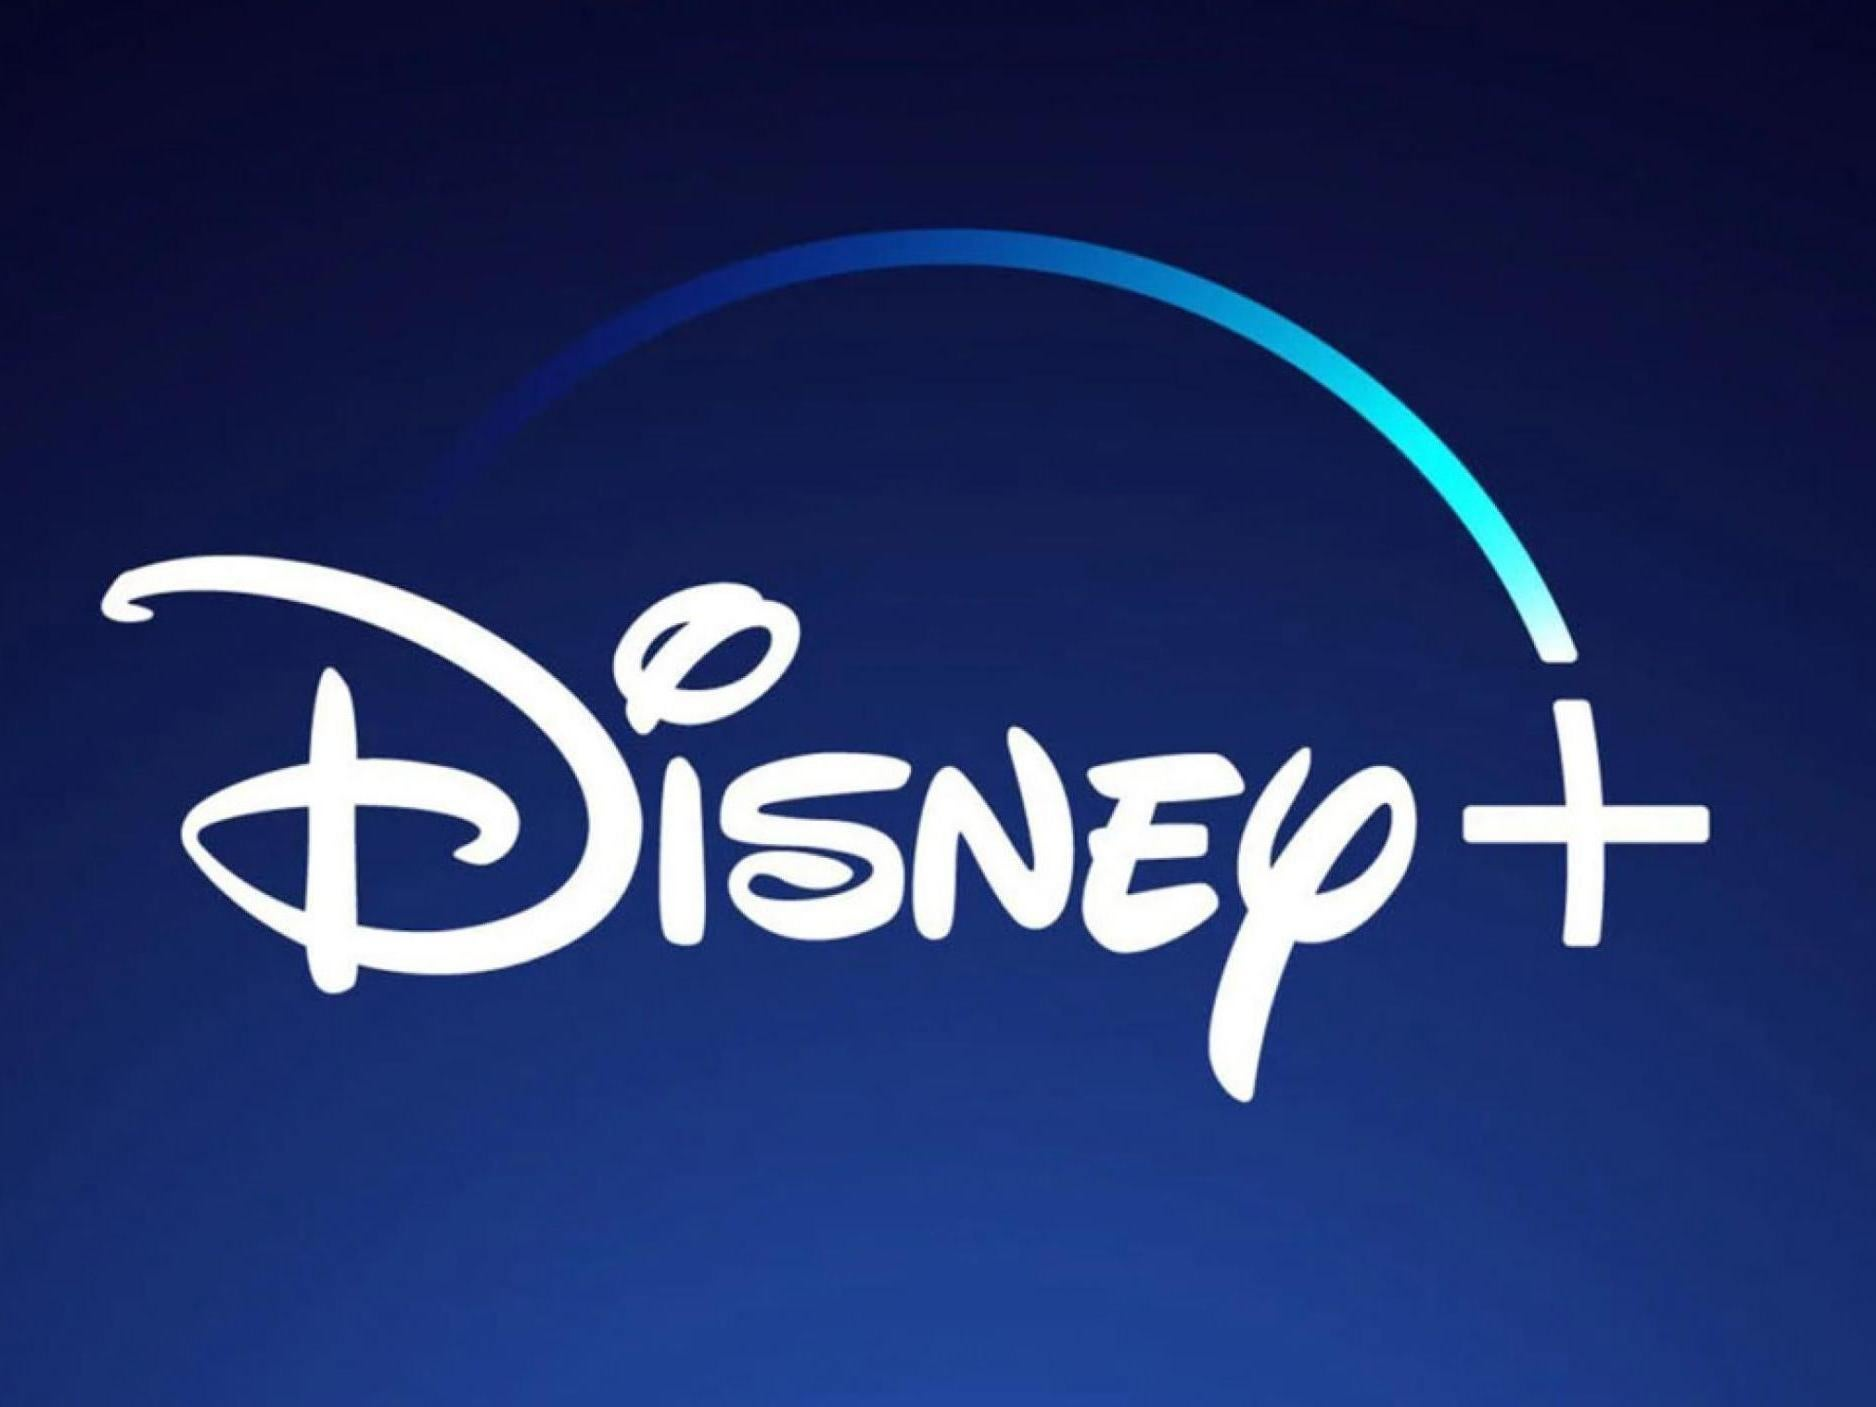 Disney+ announces full list of UK streaming films and series